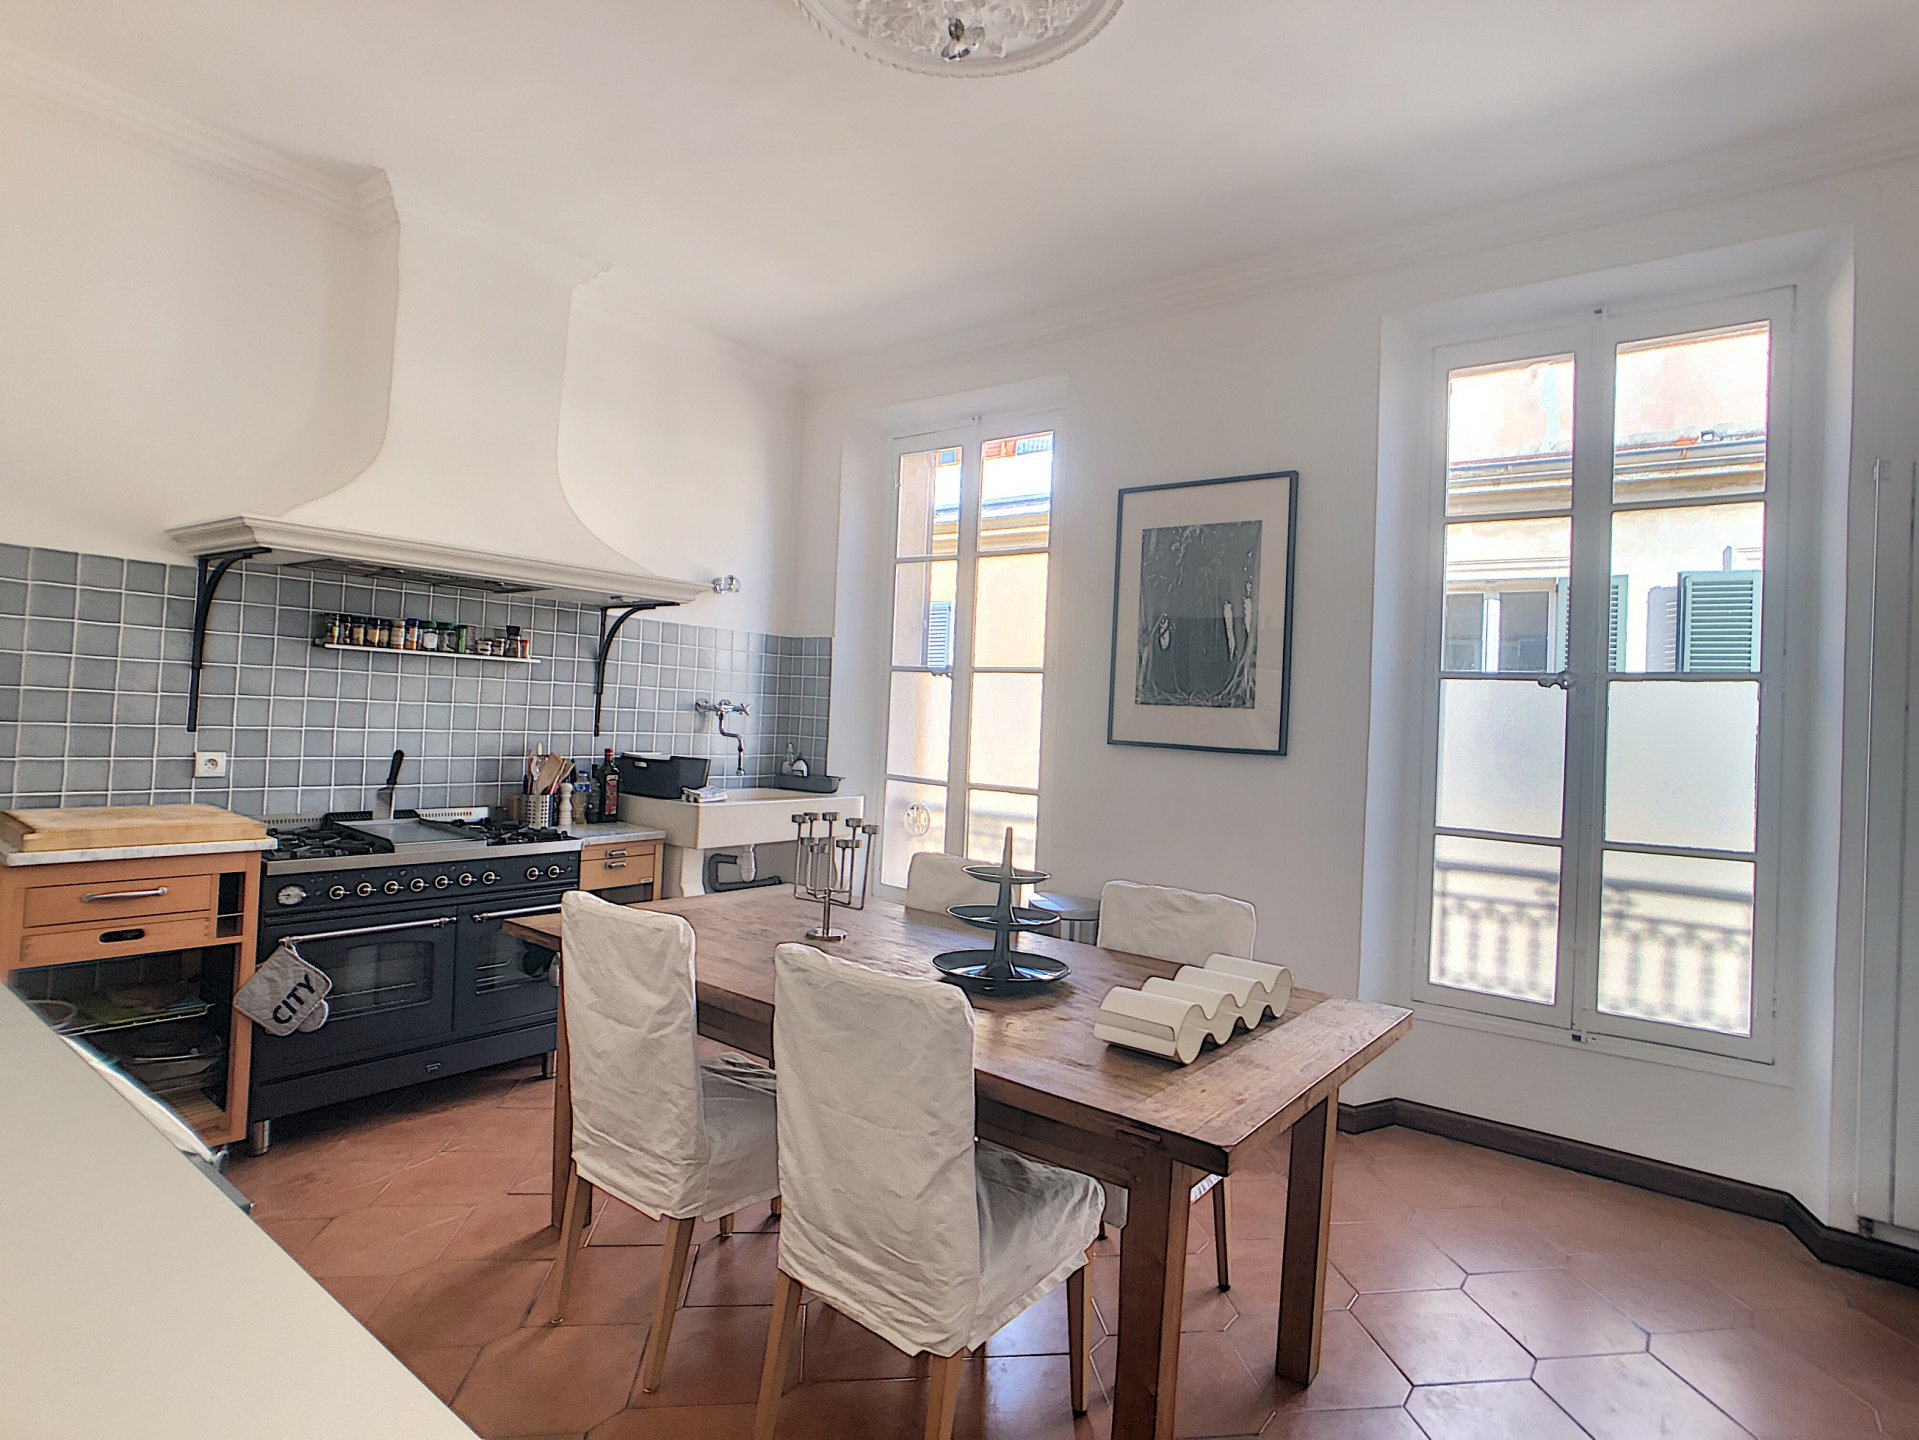 Apartment of 123 m2 in the old town